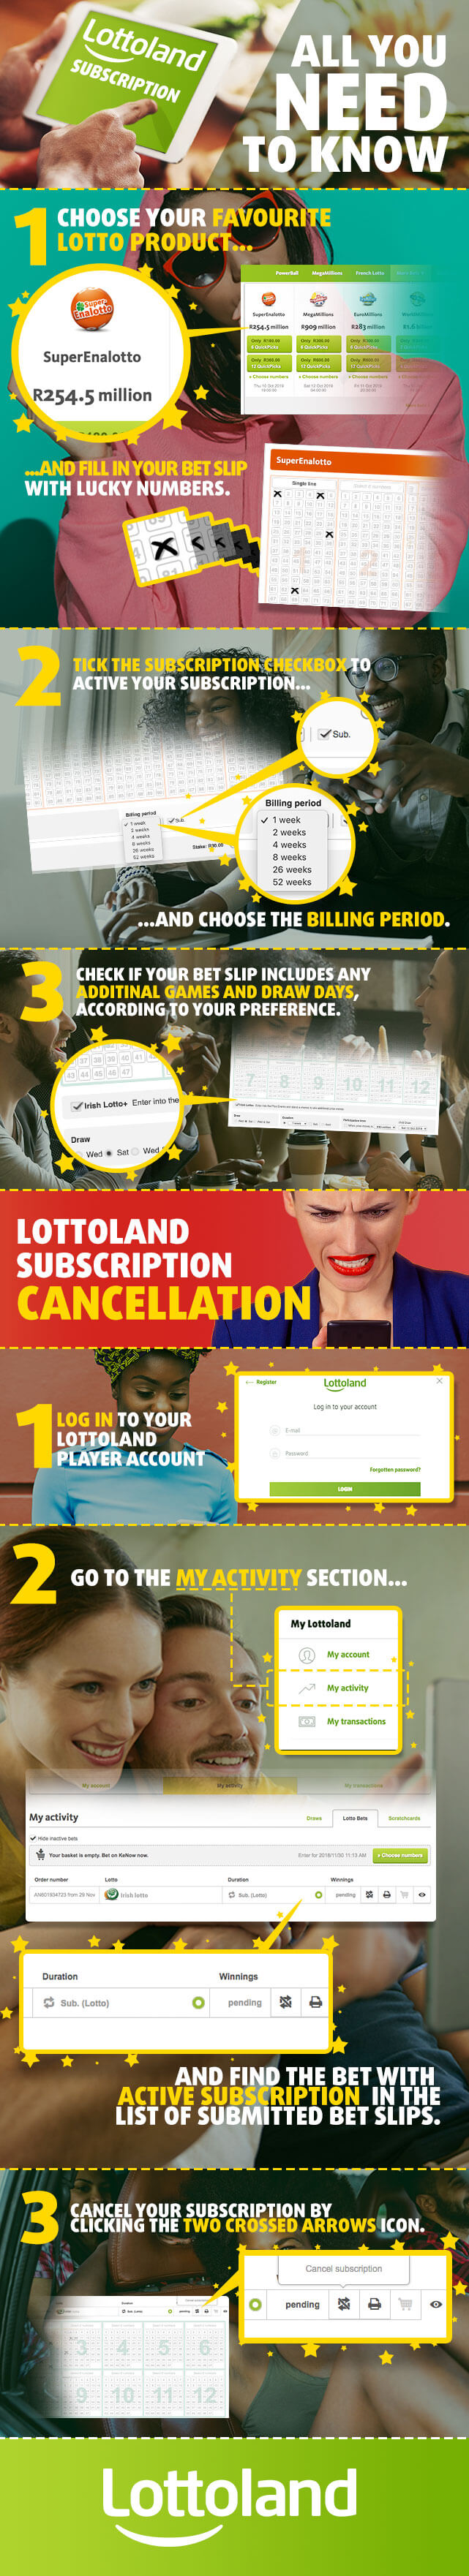 How to Activate and Cancel Lottoland Subscription?